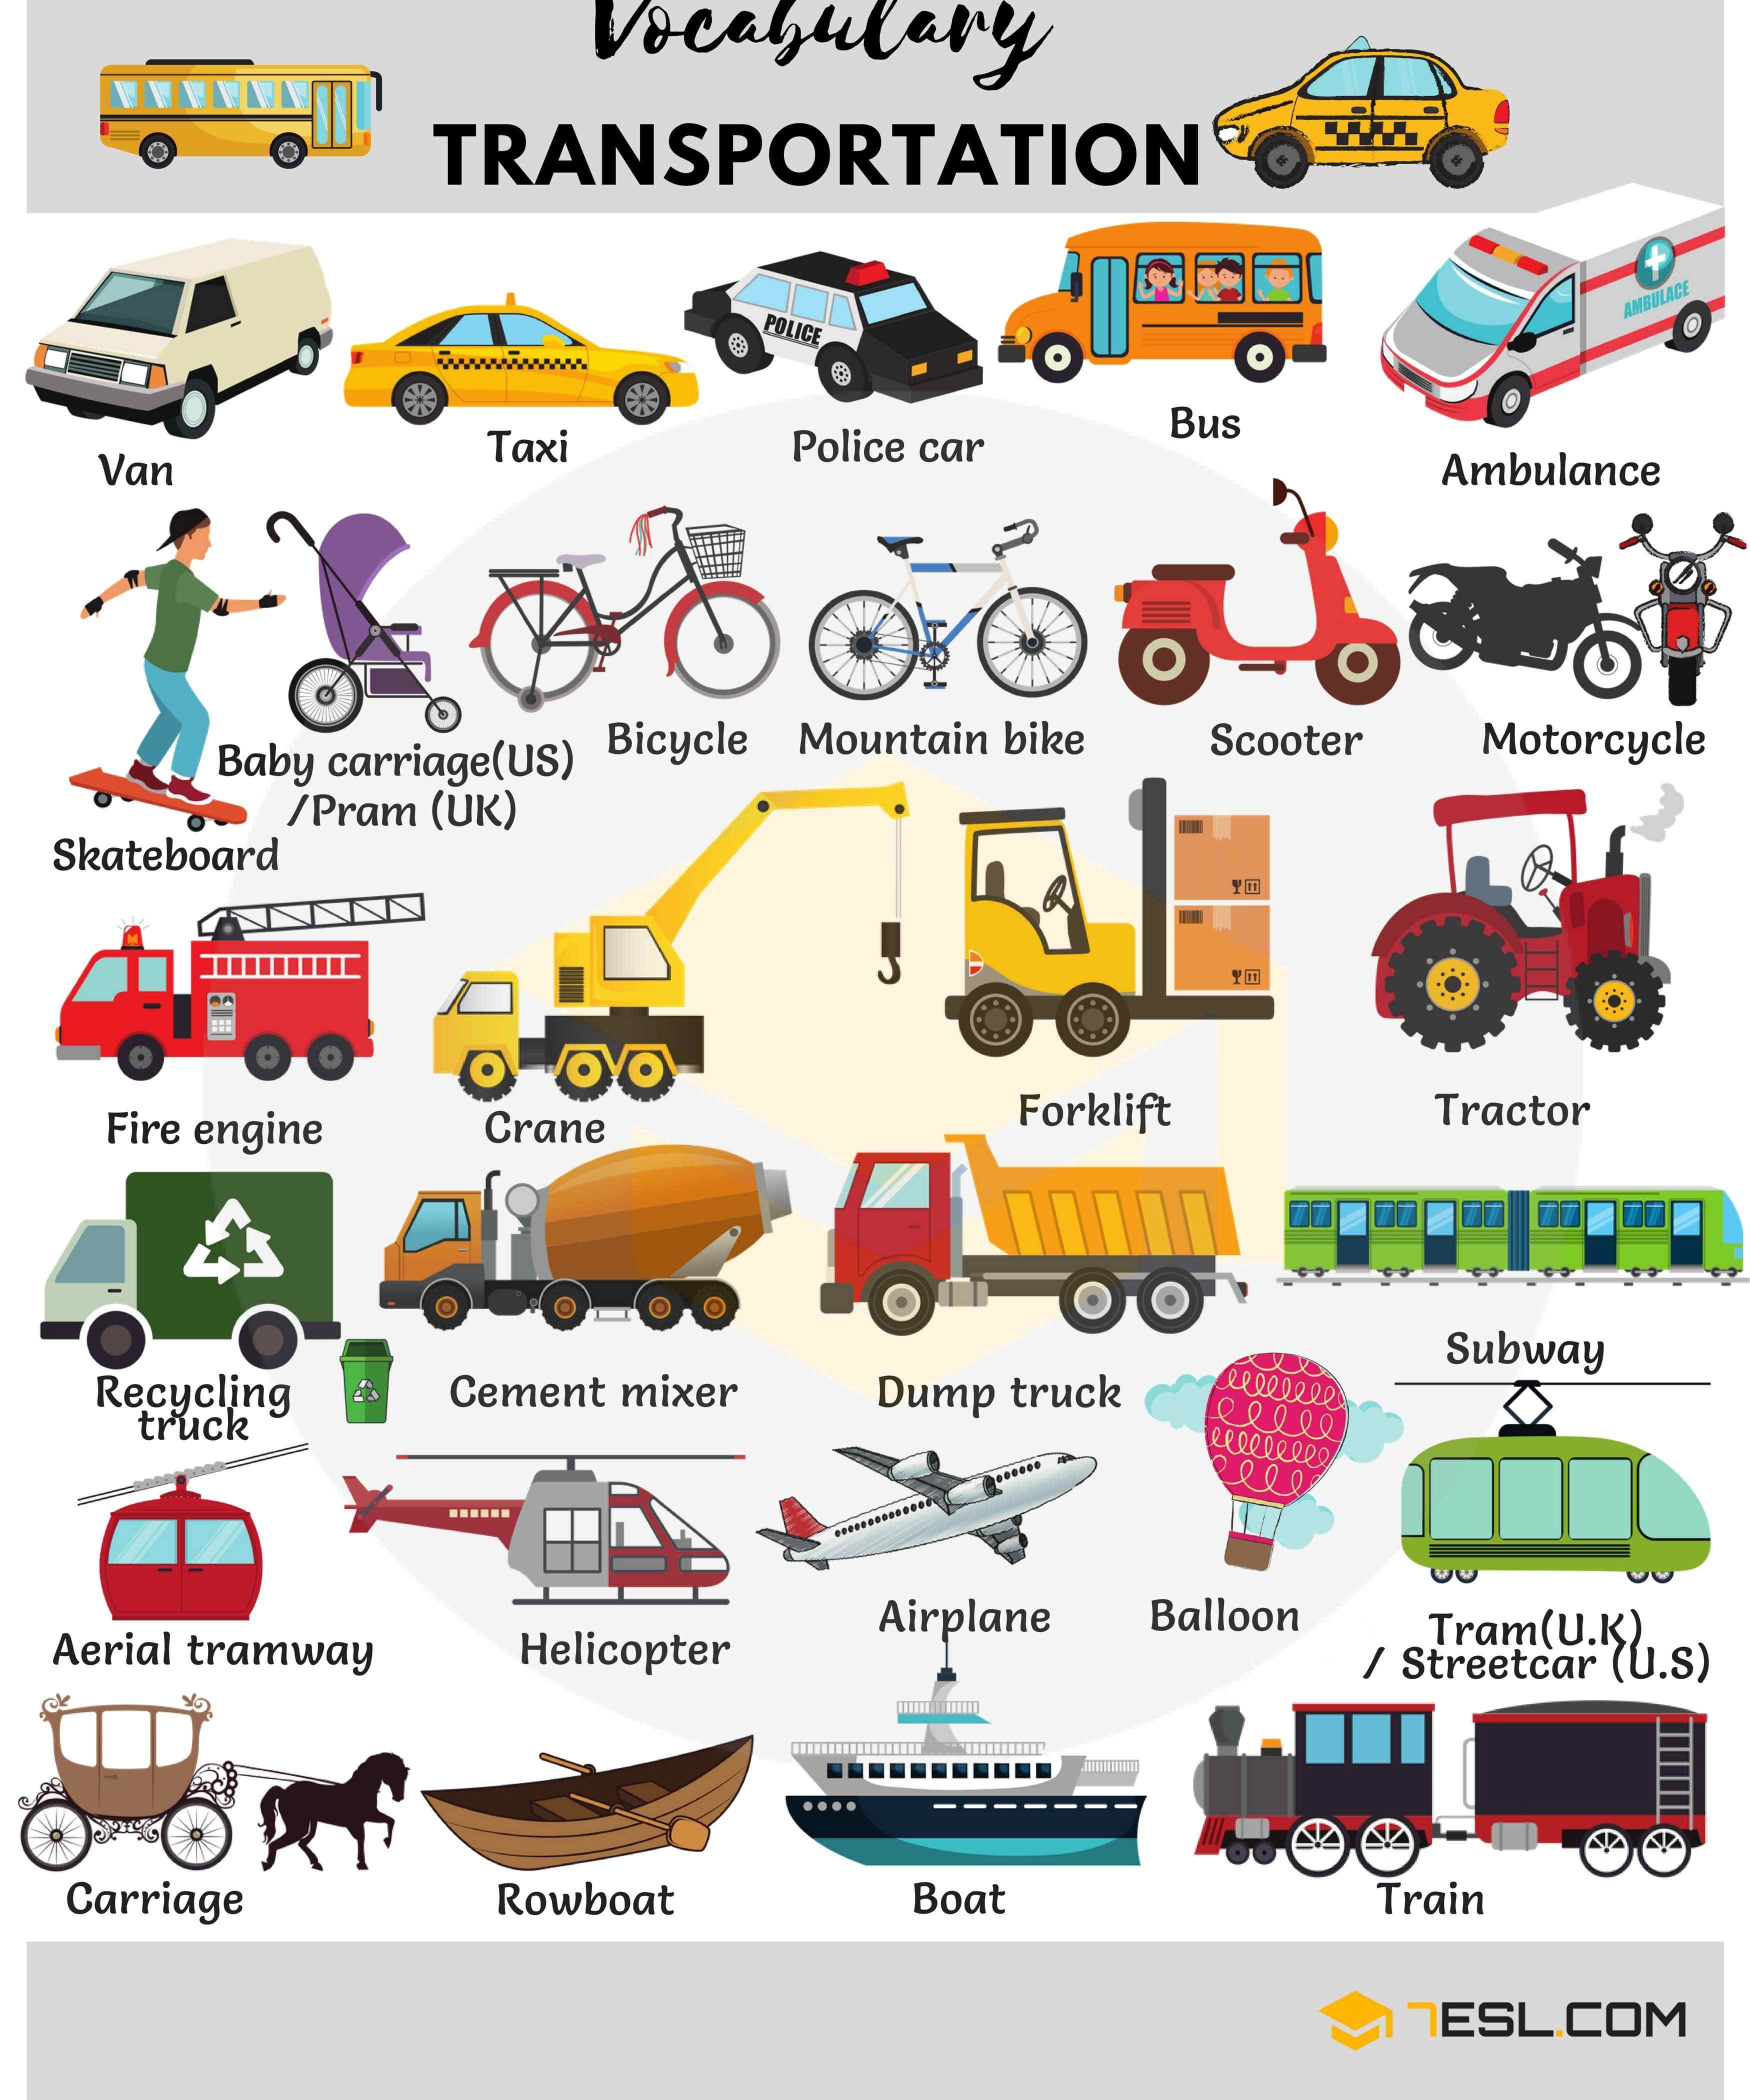 Vehicles And Transportation Vocabulary In English With Images